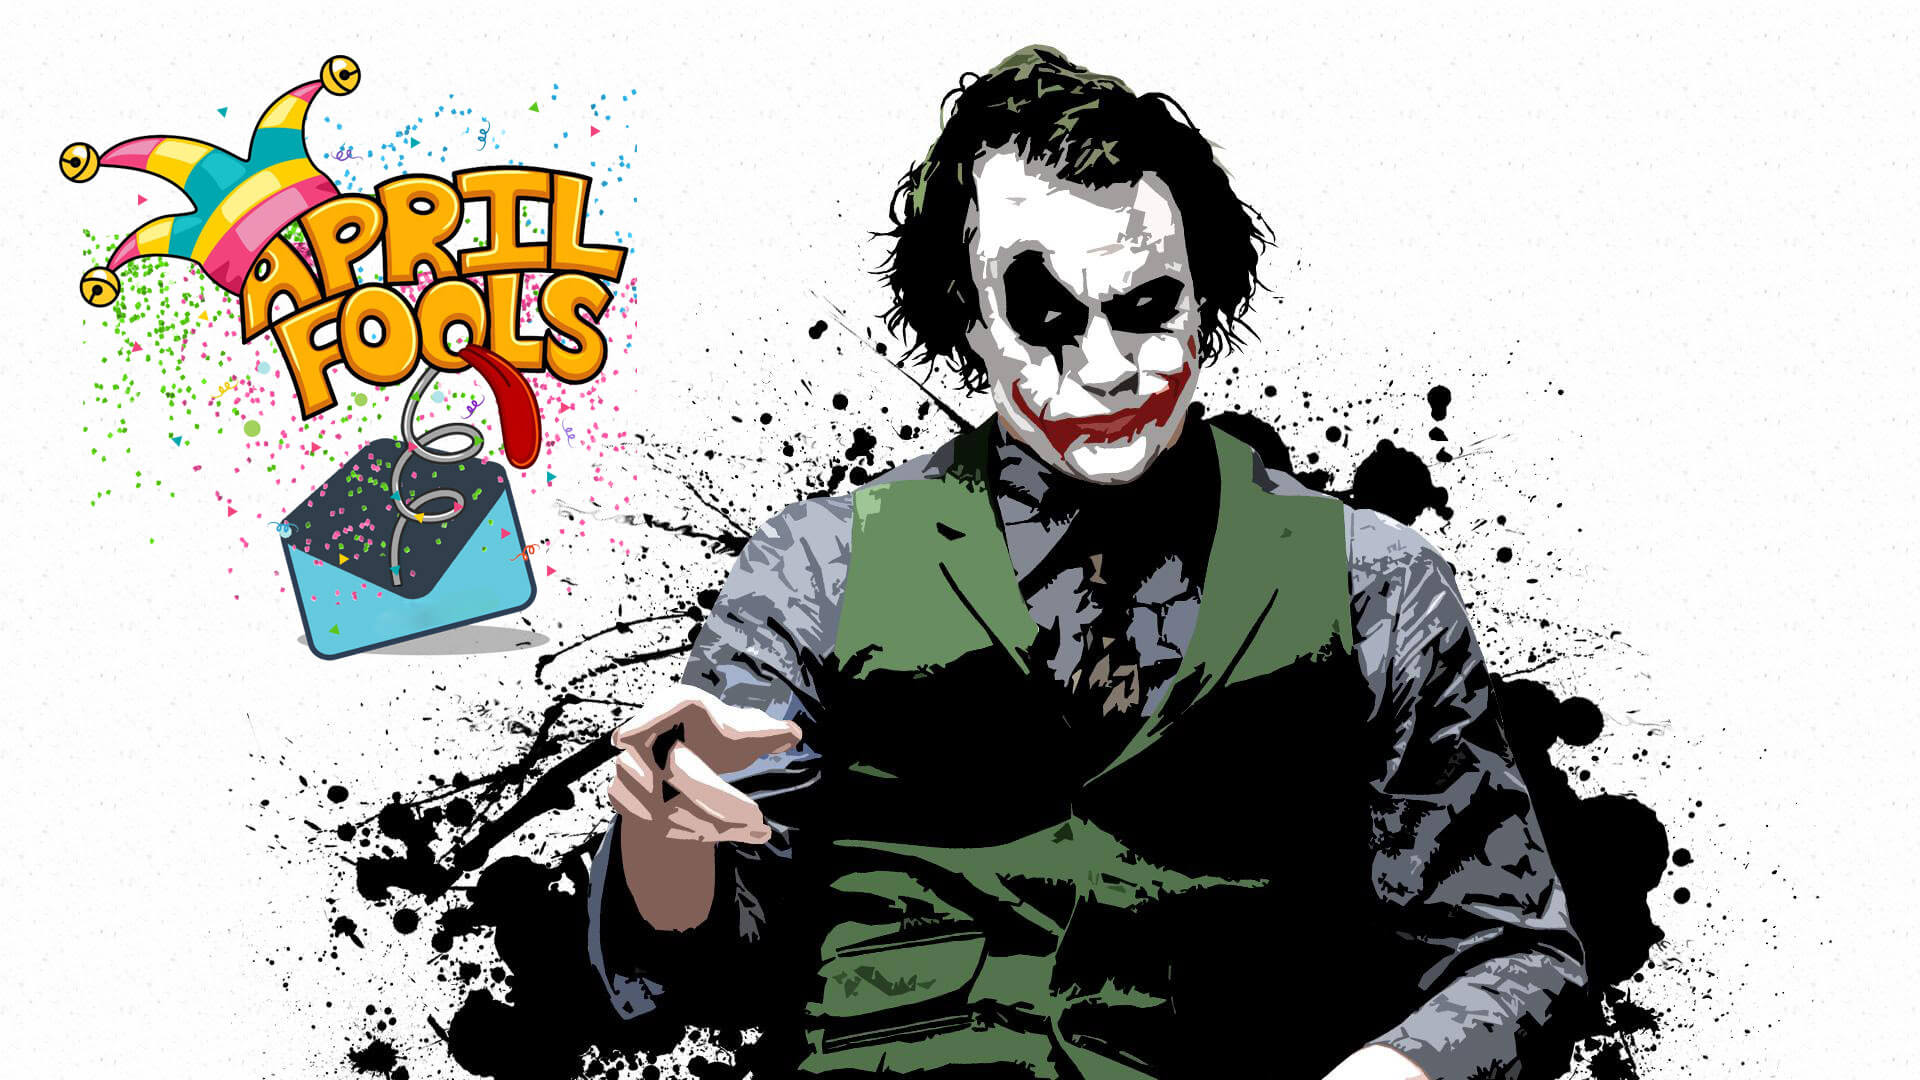 april fools day joker wishes pc hd wallpaper